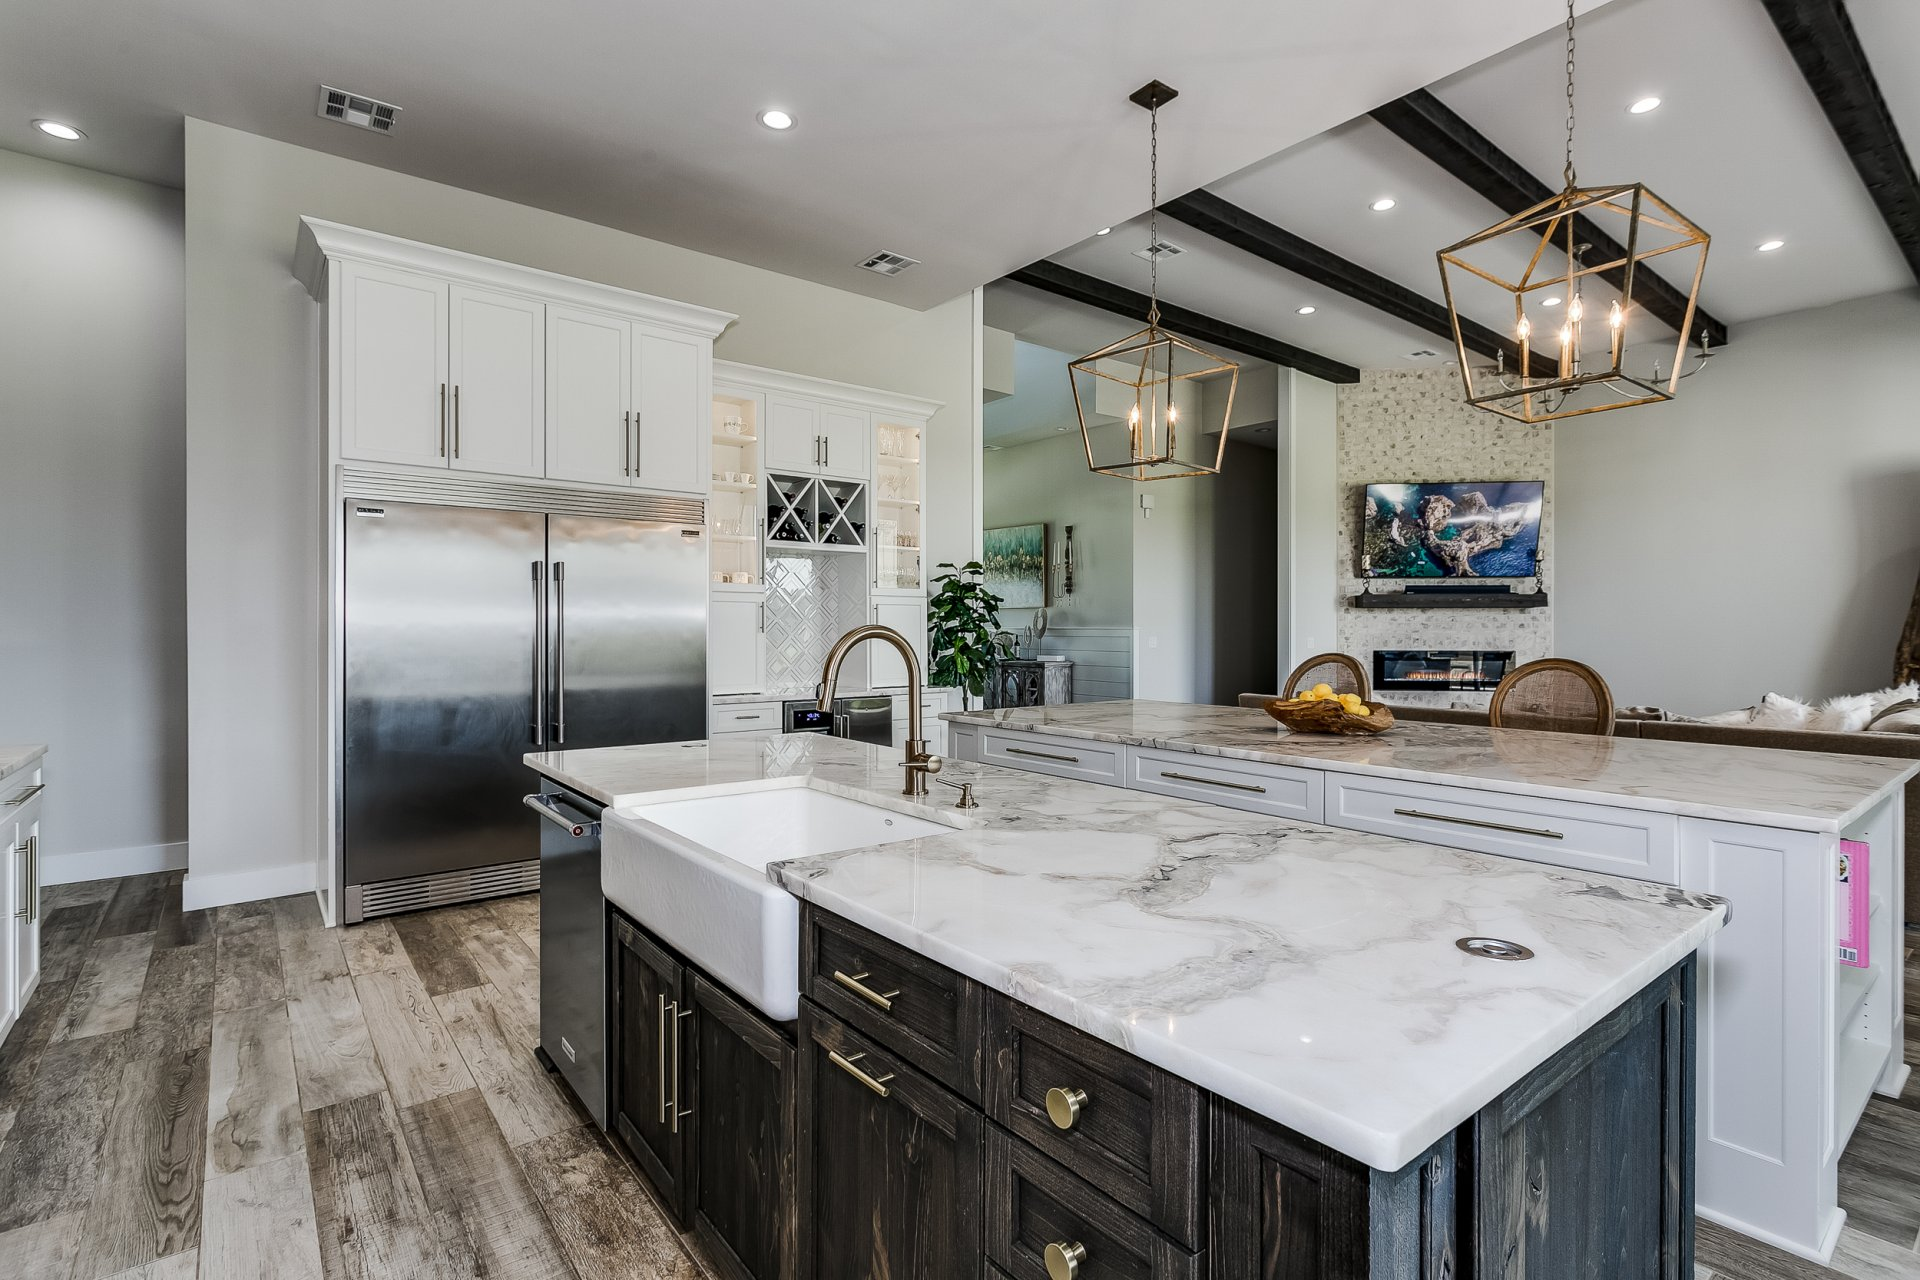 A custom kitchen with beautiful finishes and functional features